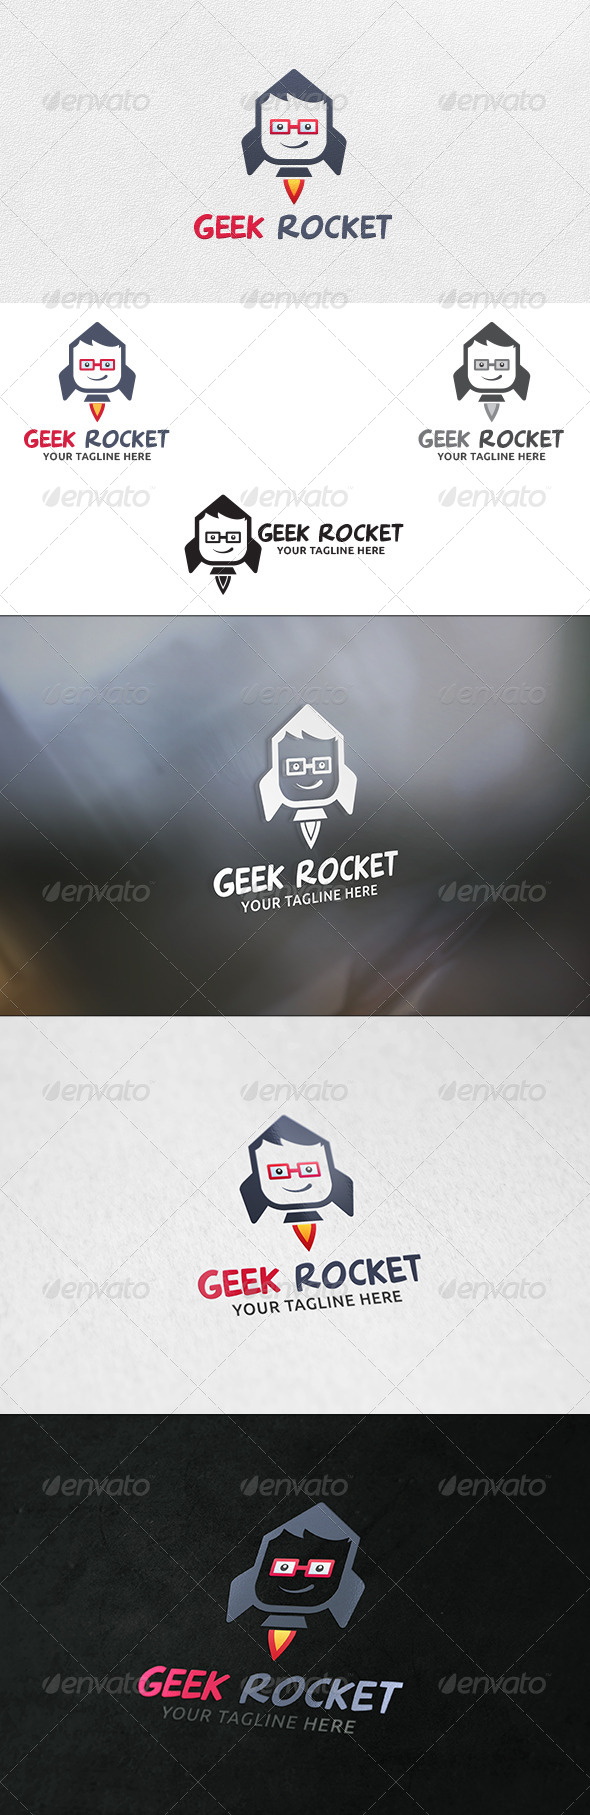 Geek Rocket - Logo Template - Humans Logo Templates